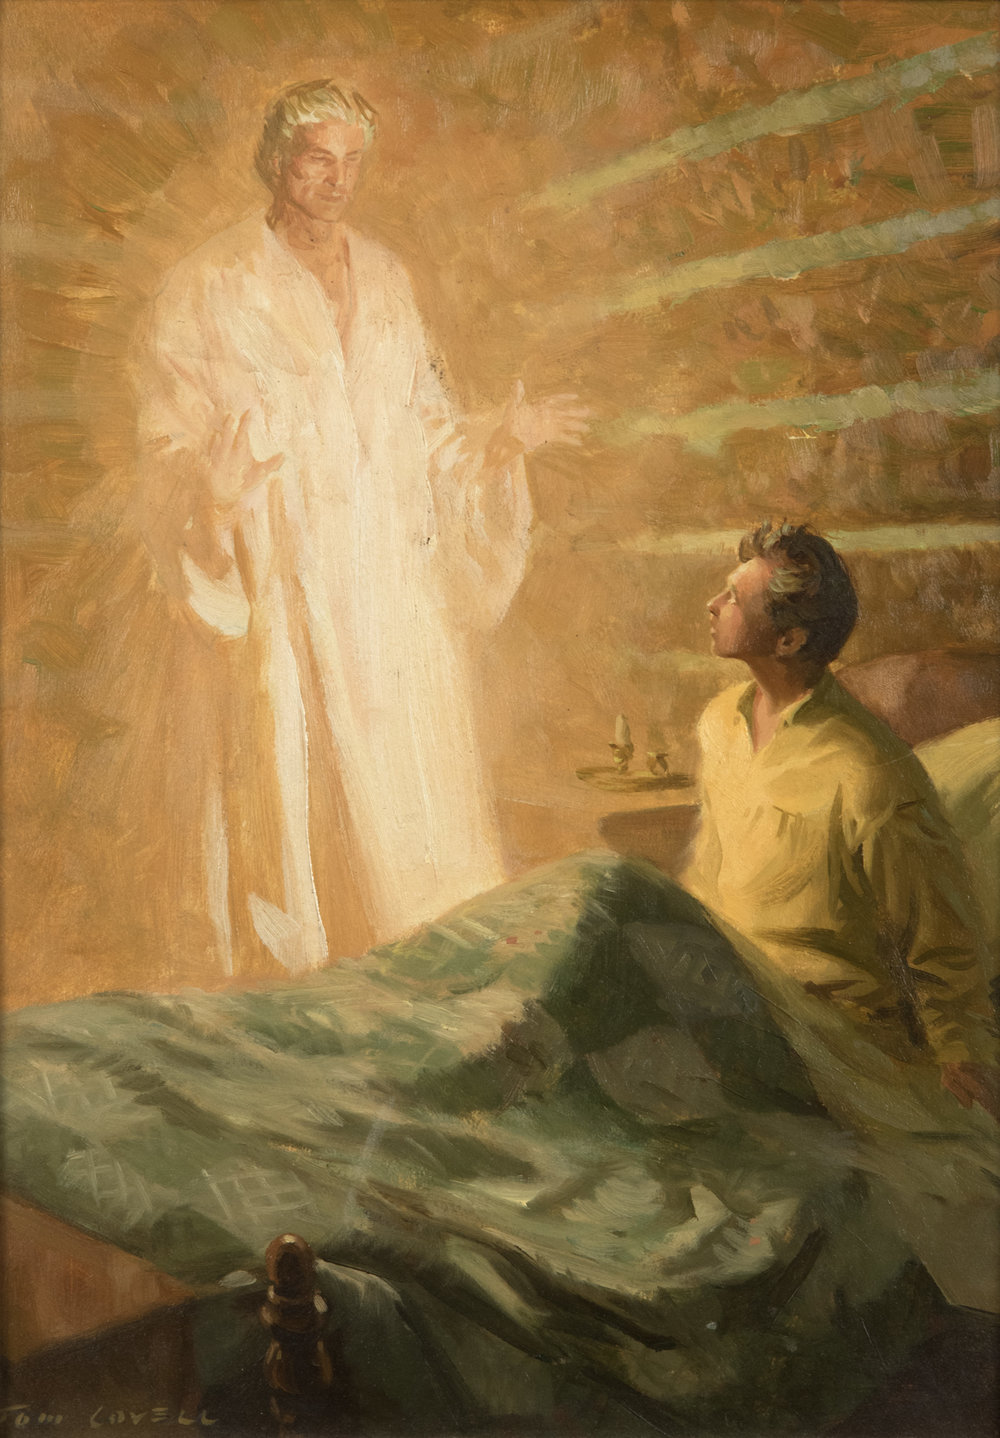 Moroni Appearing to Joseph Smith by Tom Lovell. Oil on Linen, 14 ½ x 10 in.